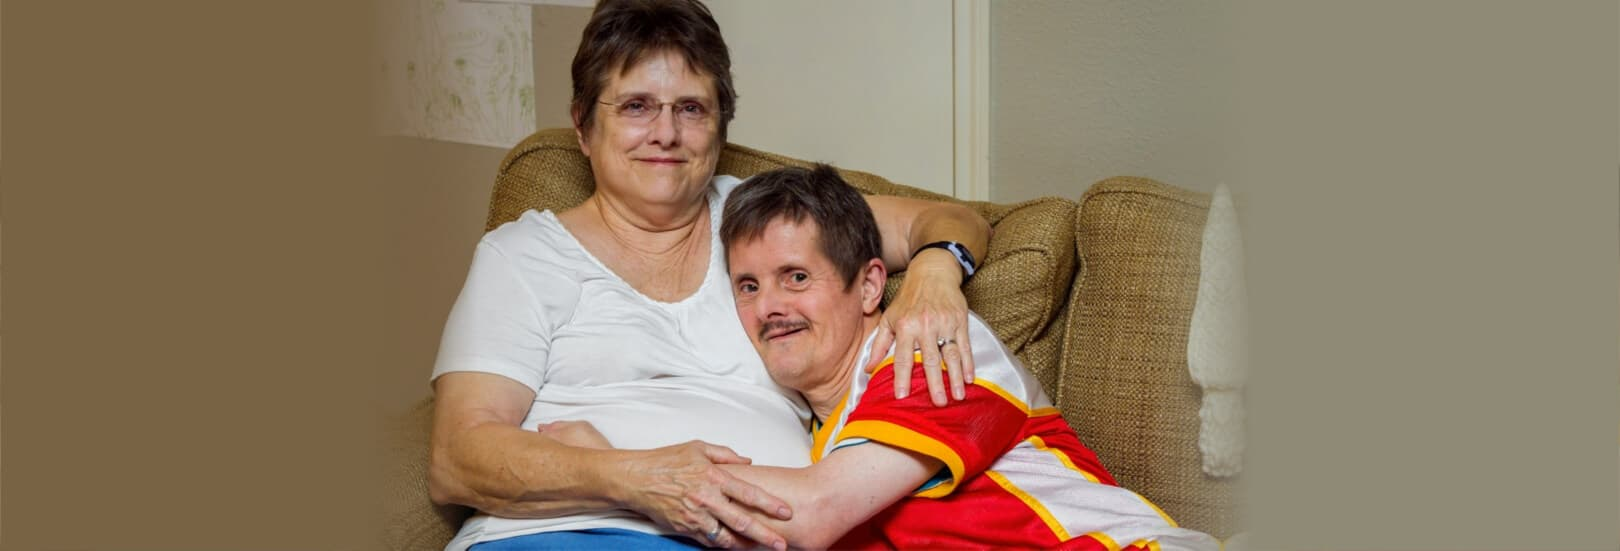 men with Downs Syndrome, hugs his sister as they sit on a couch